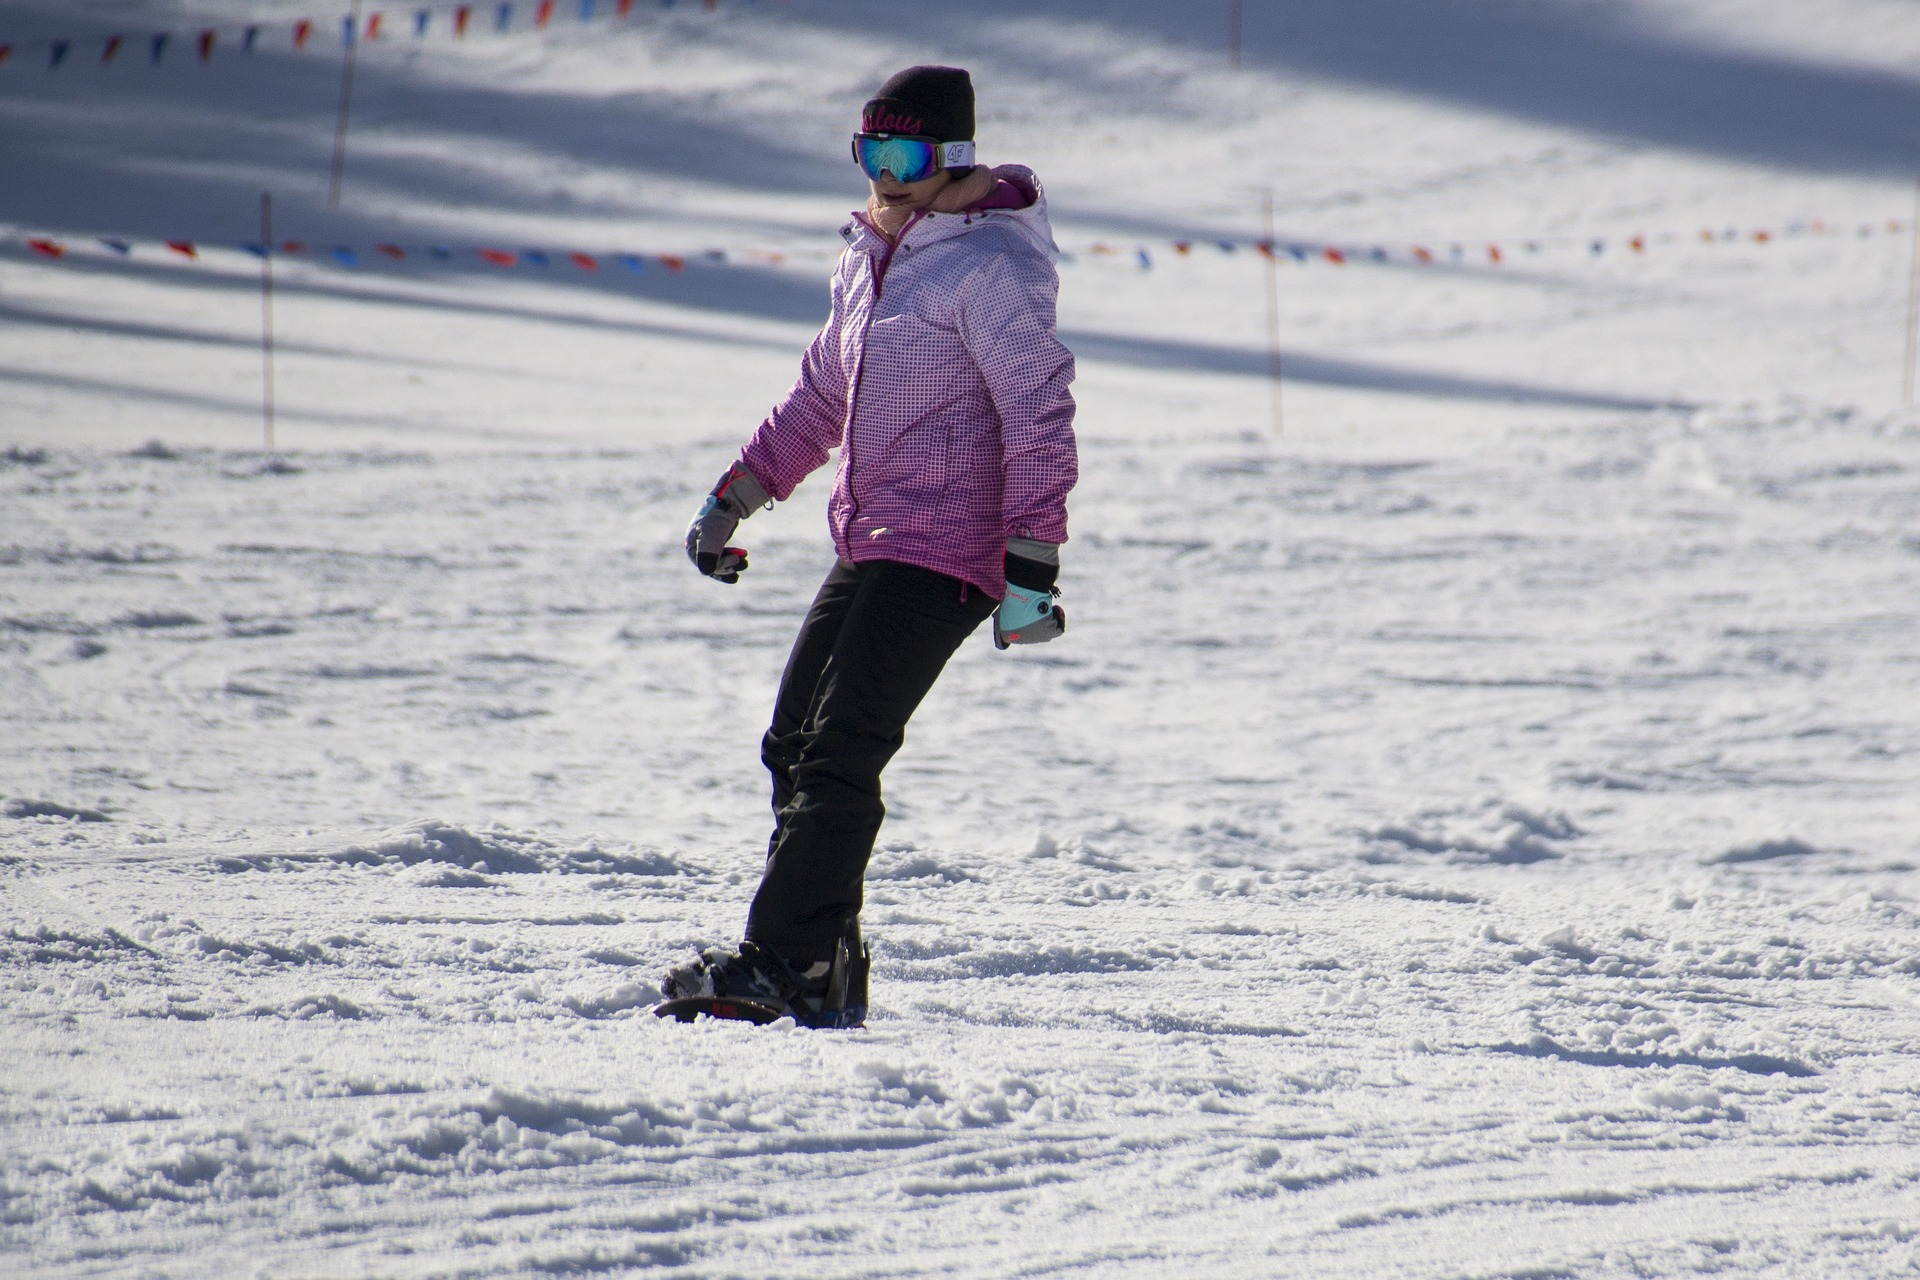 Late night discount on skiing and boarding at Snow Trails in Mansfield